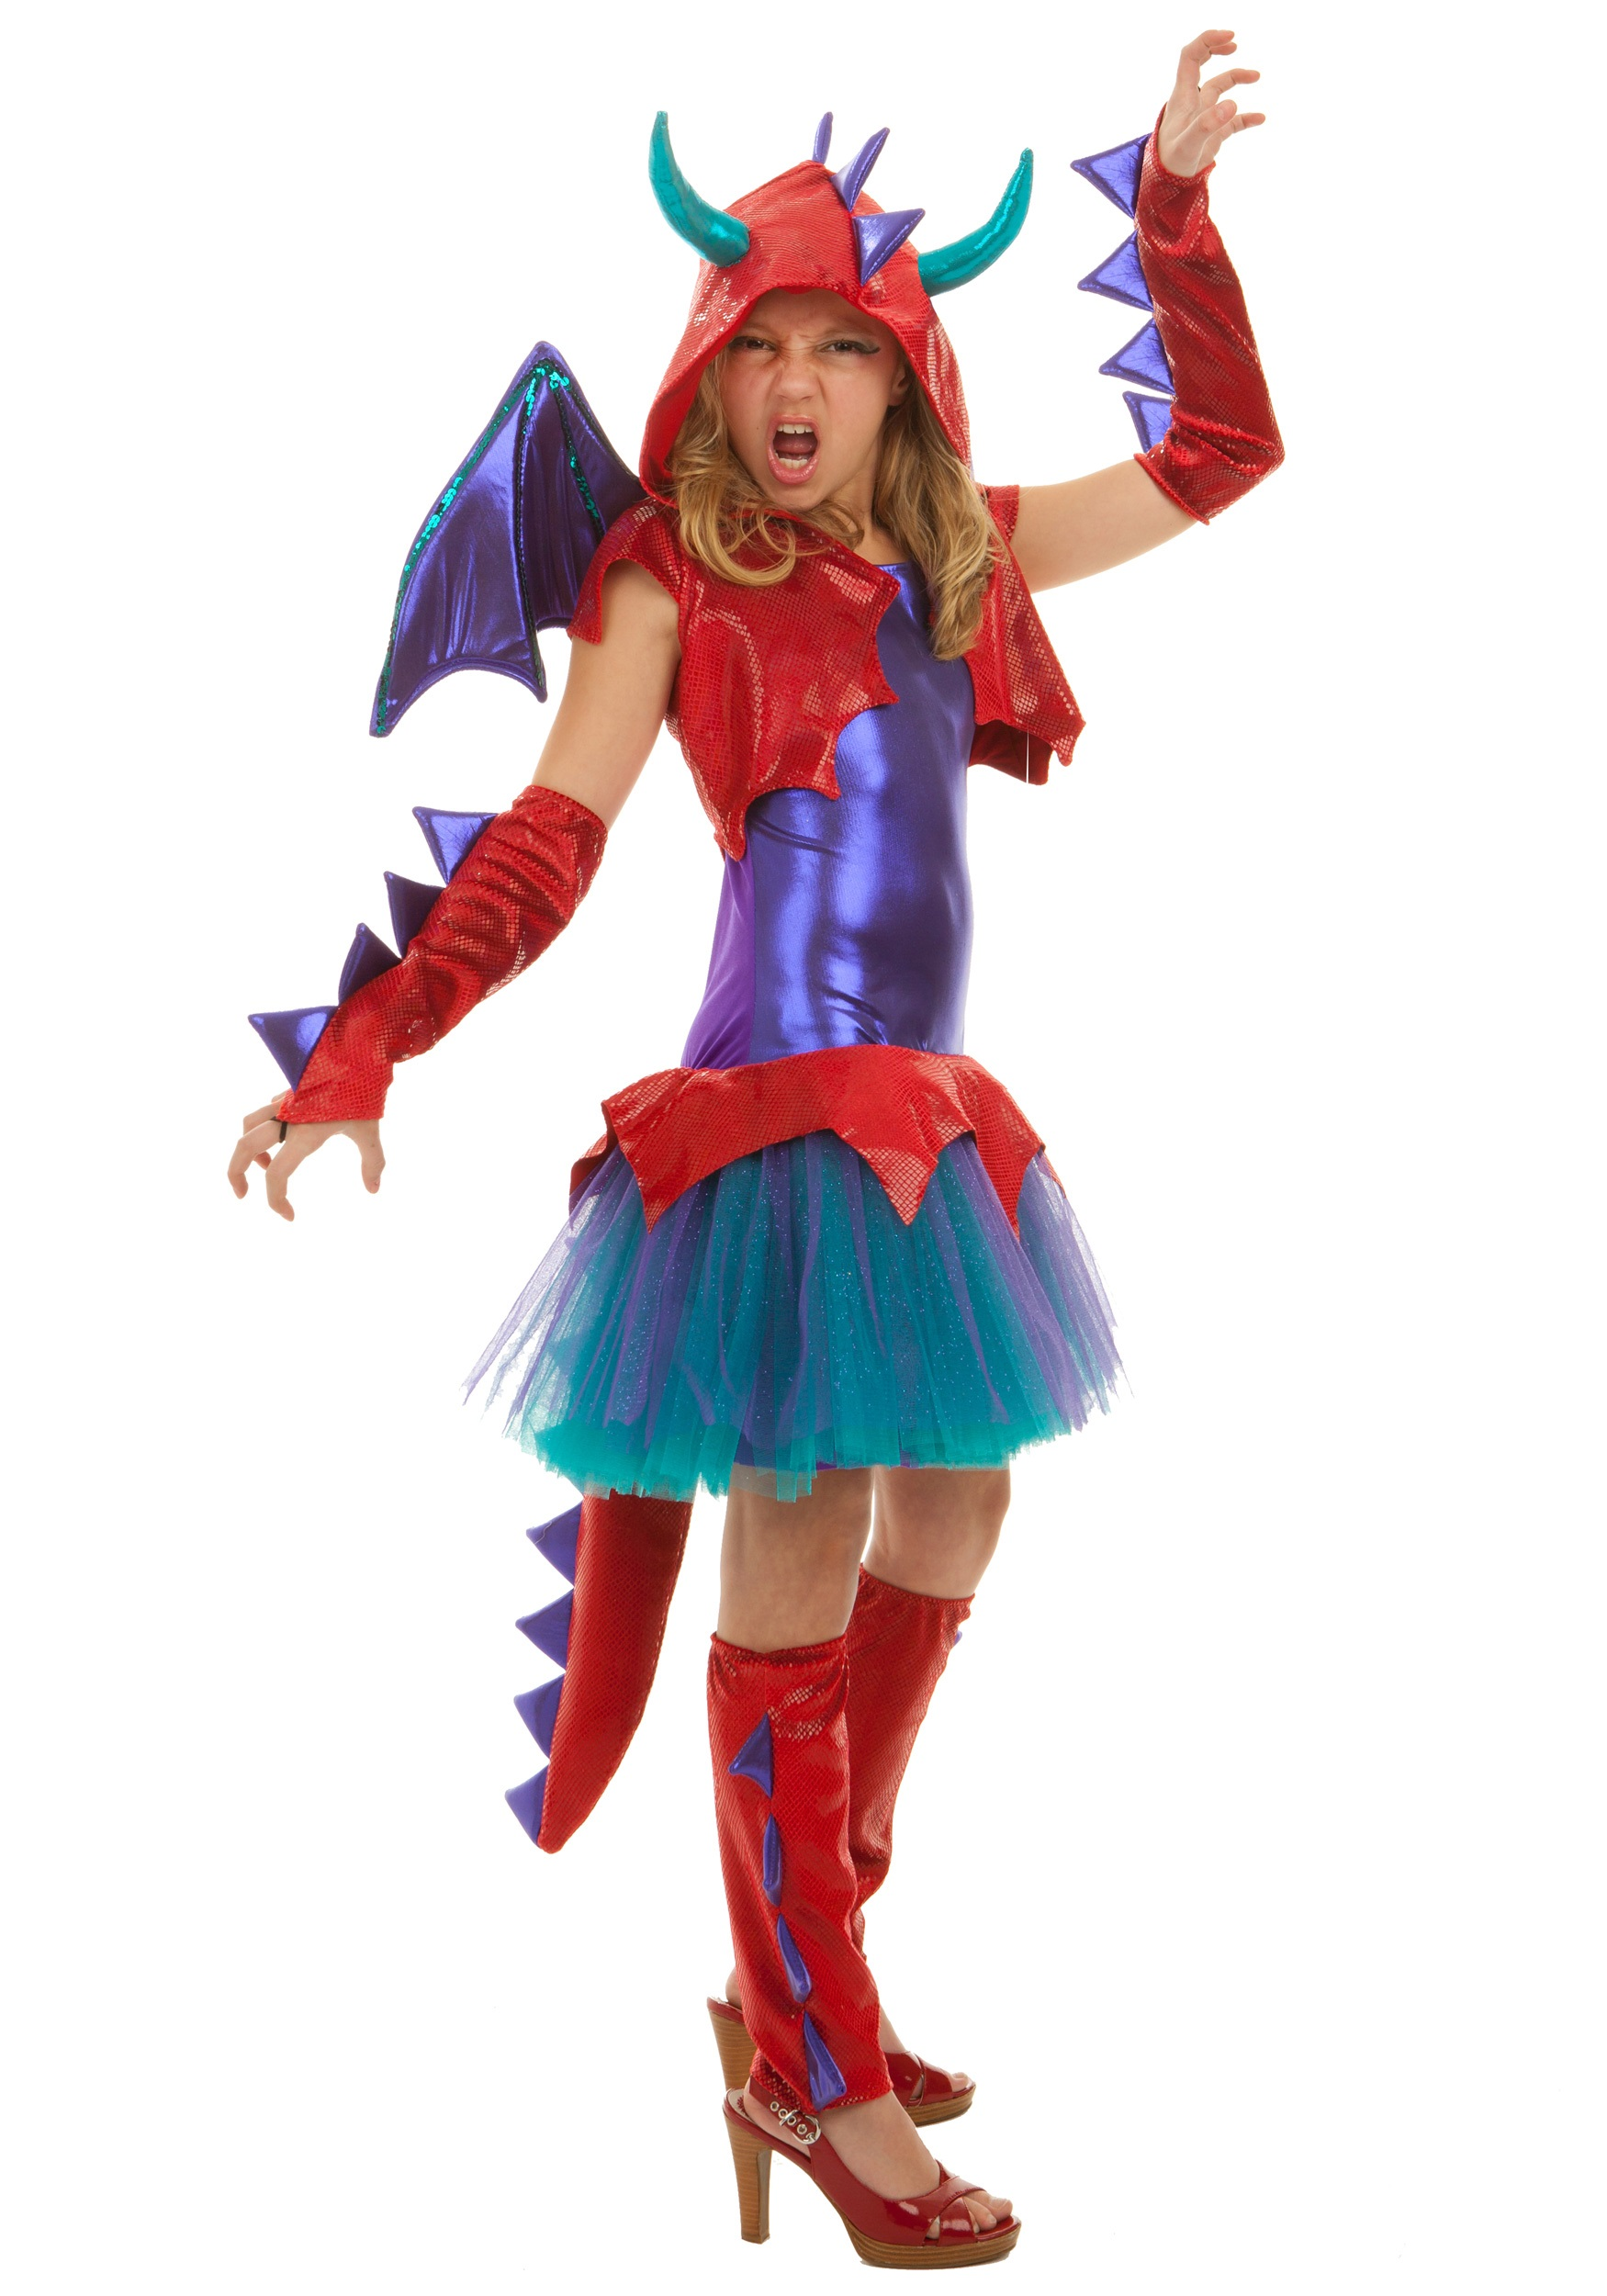 Tween Dragon Costume Halloween Costume Ideas 2019